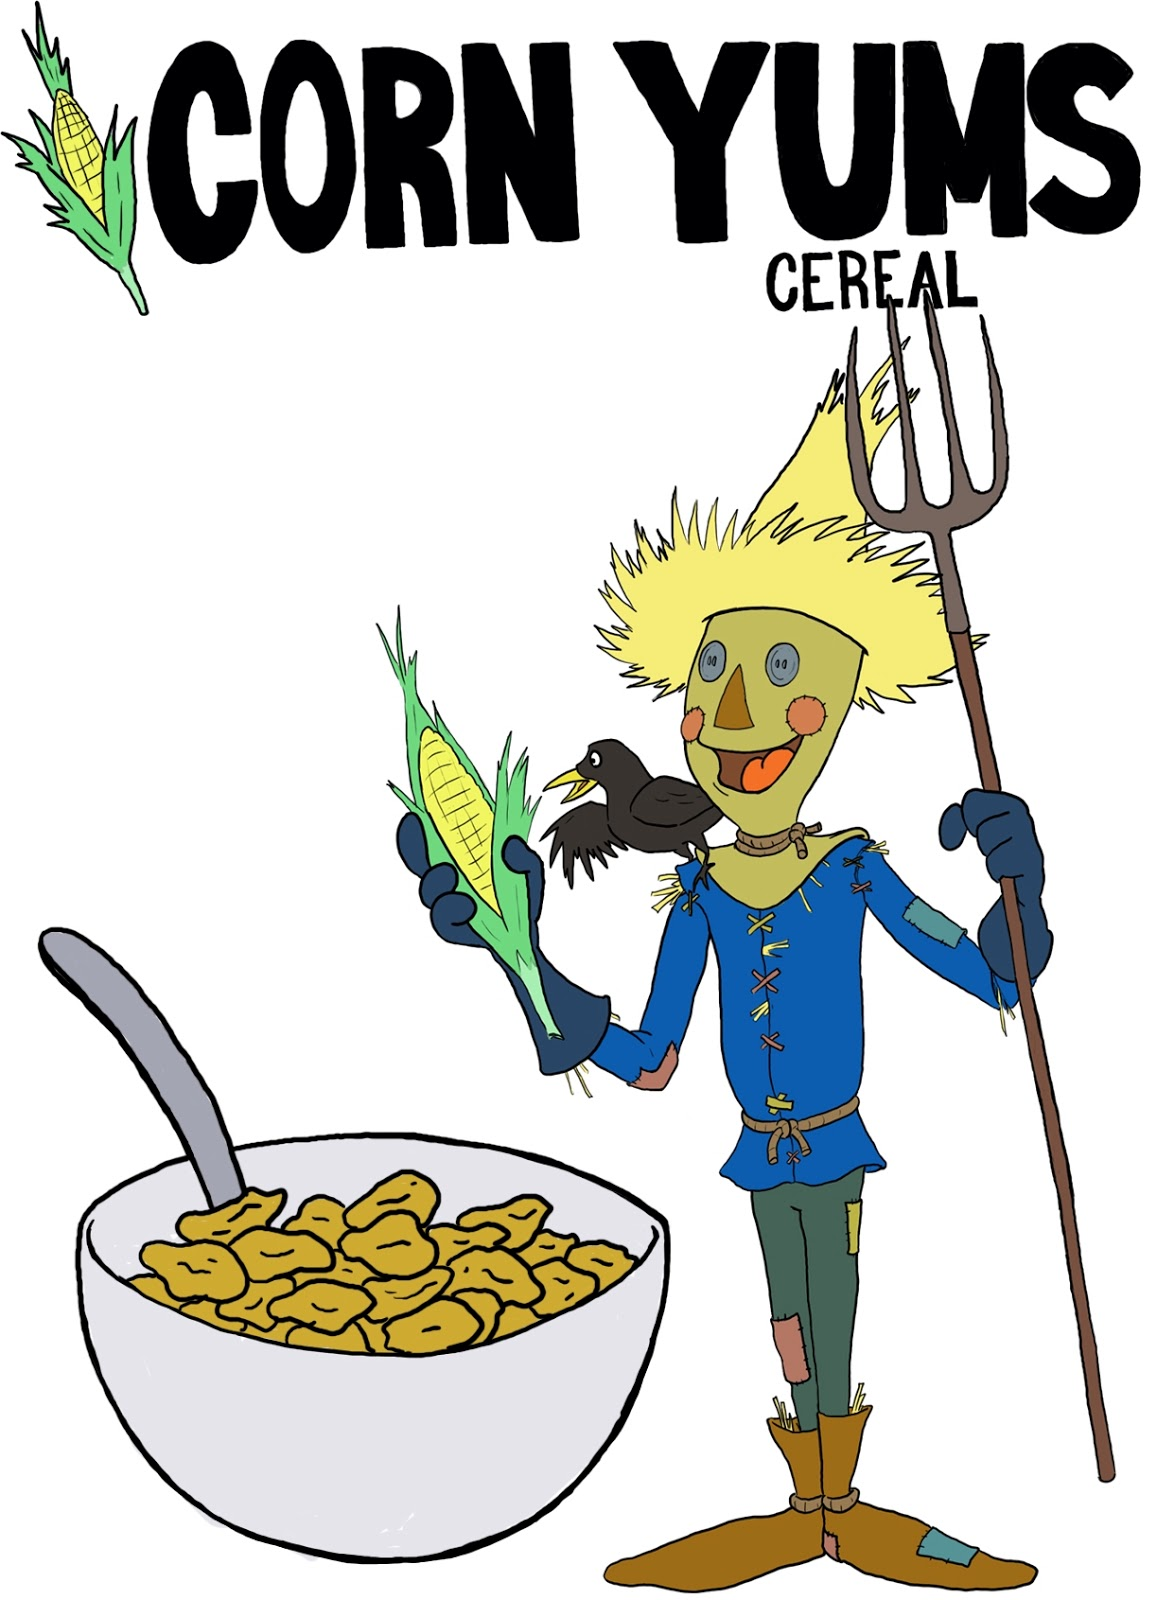 fysh's blog: More breakfast cereal mascots